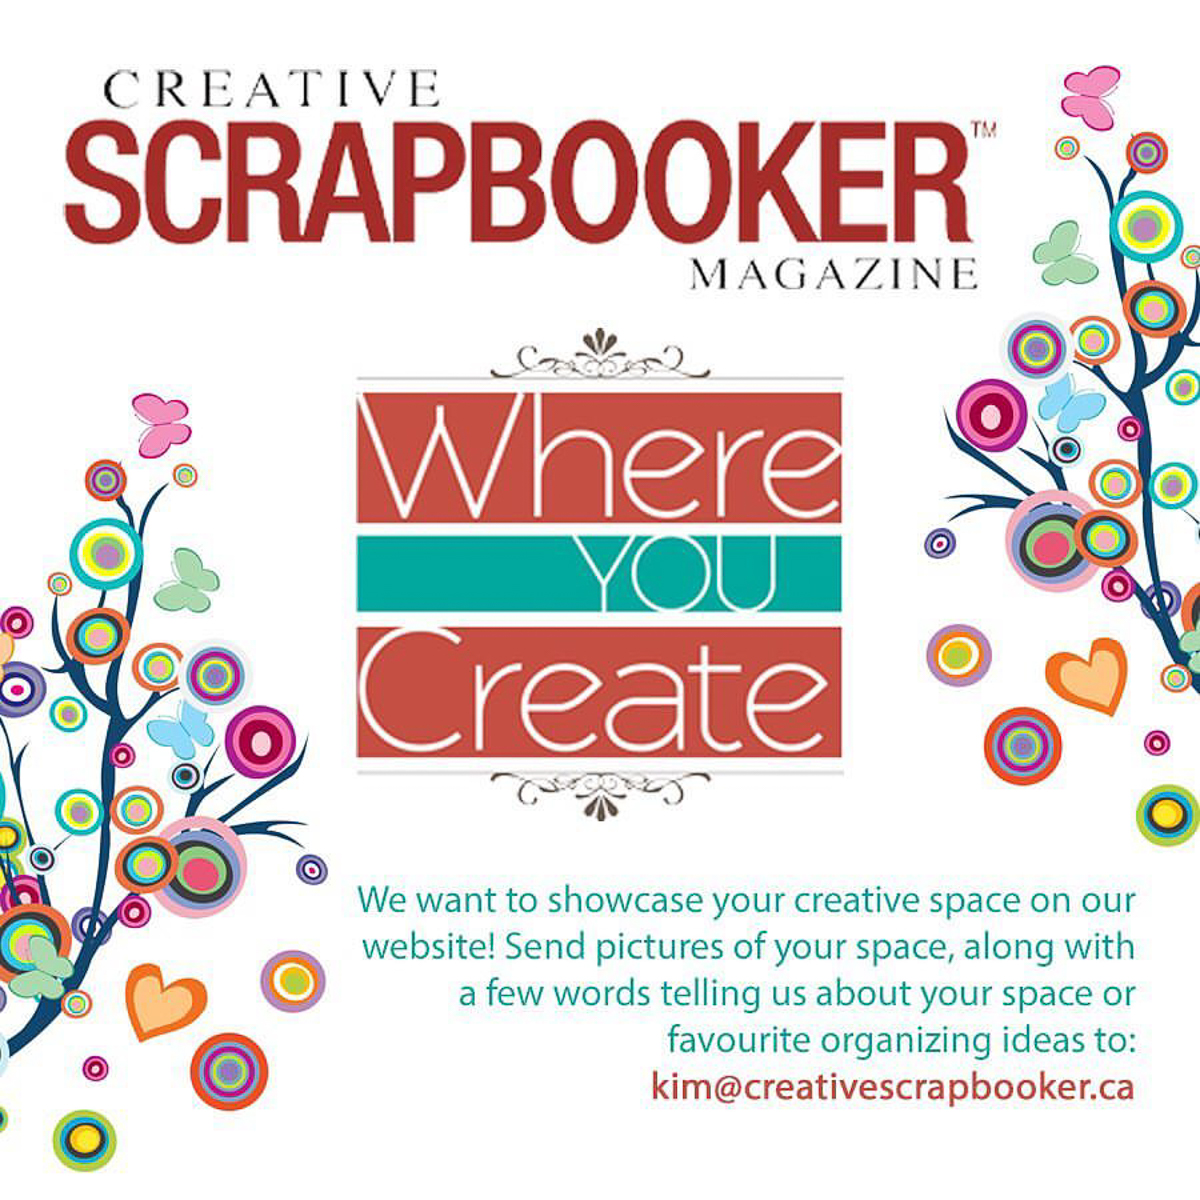 WHERE YOU CREATE/submissions/Creative Scrapbooker Magazine/creative spaces